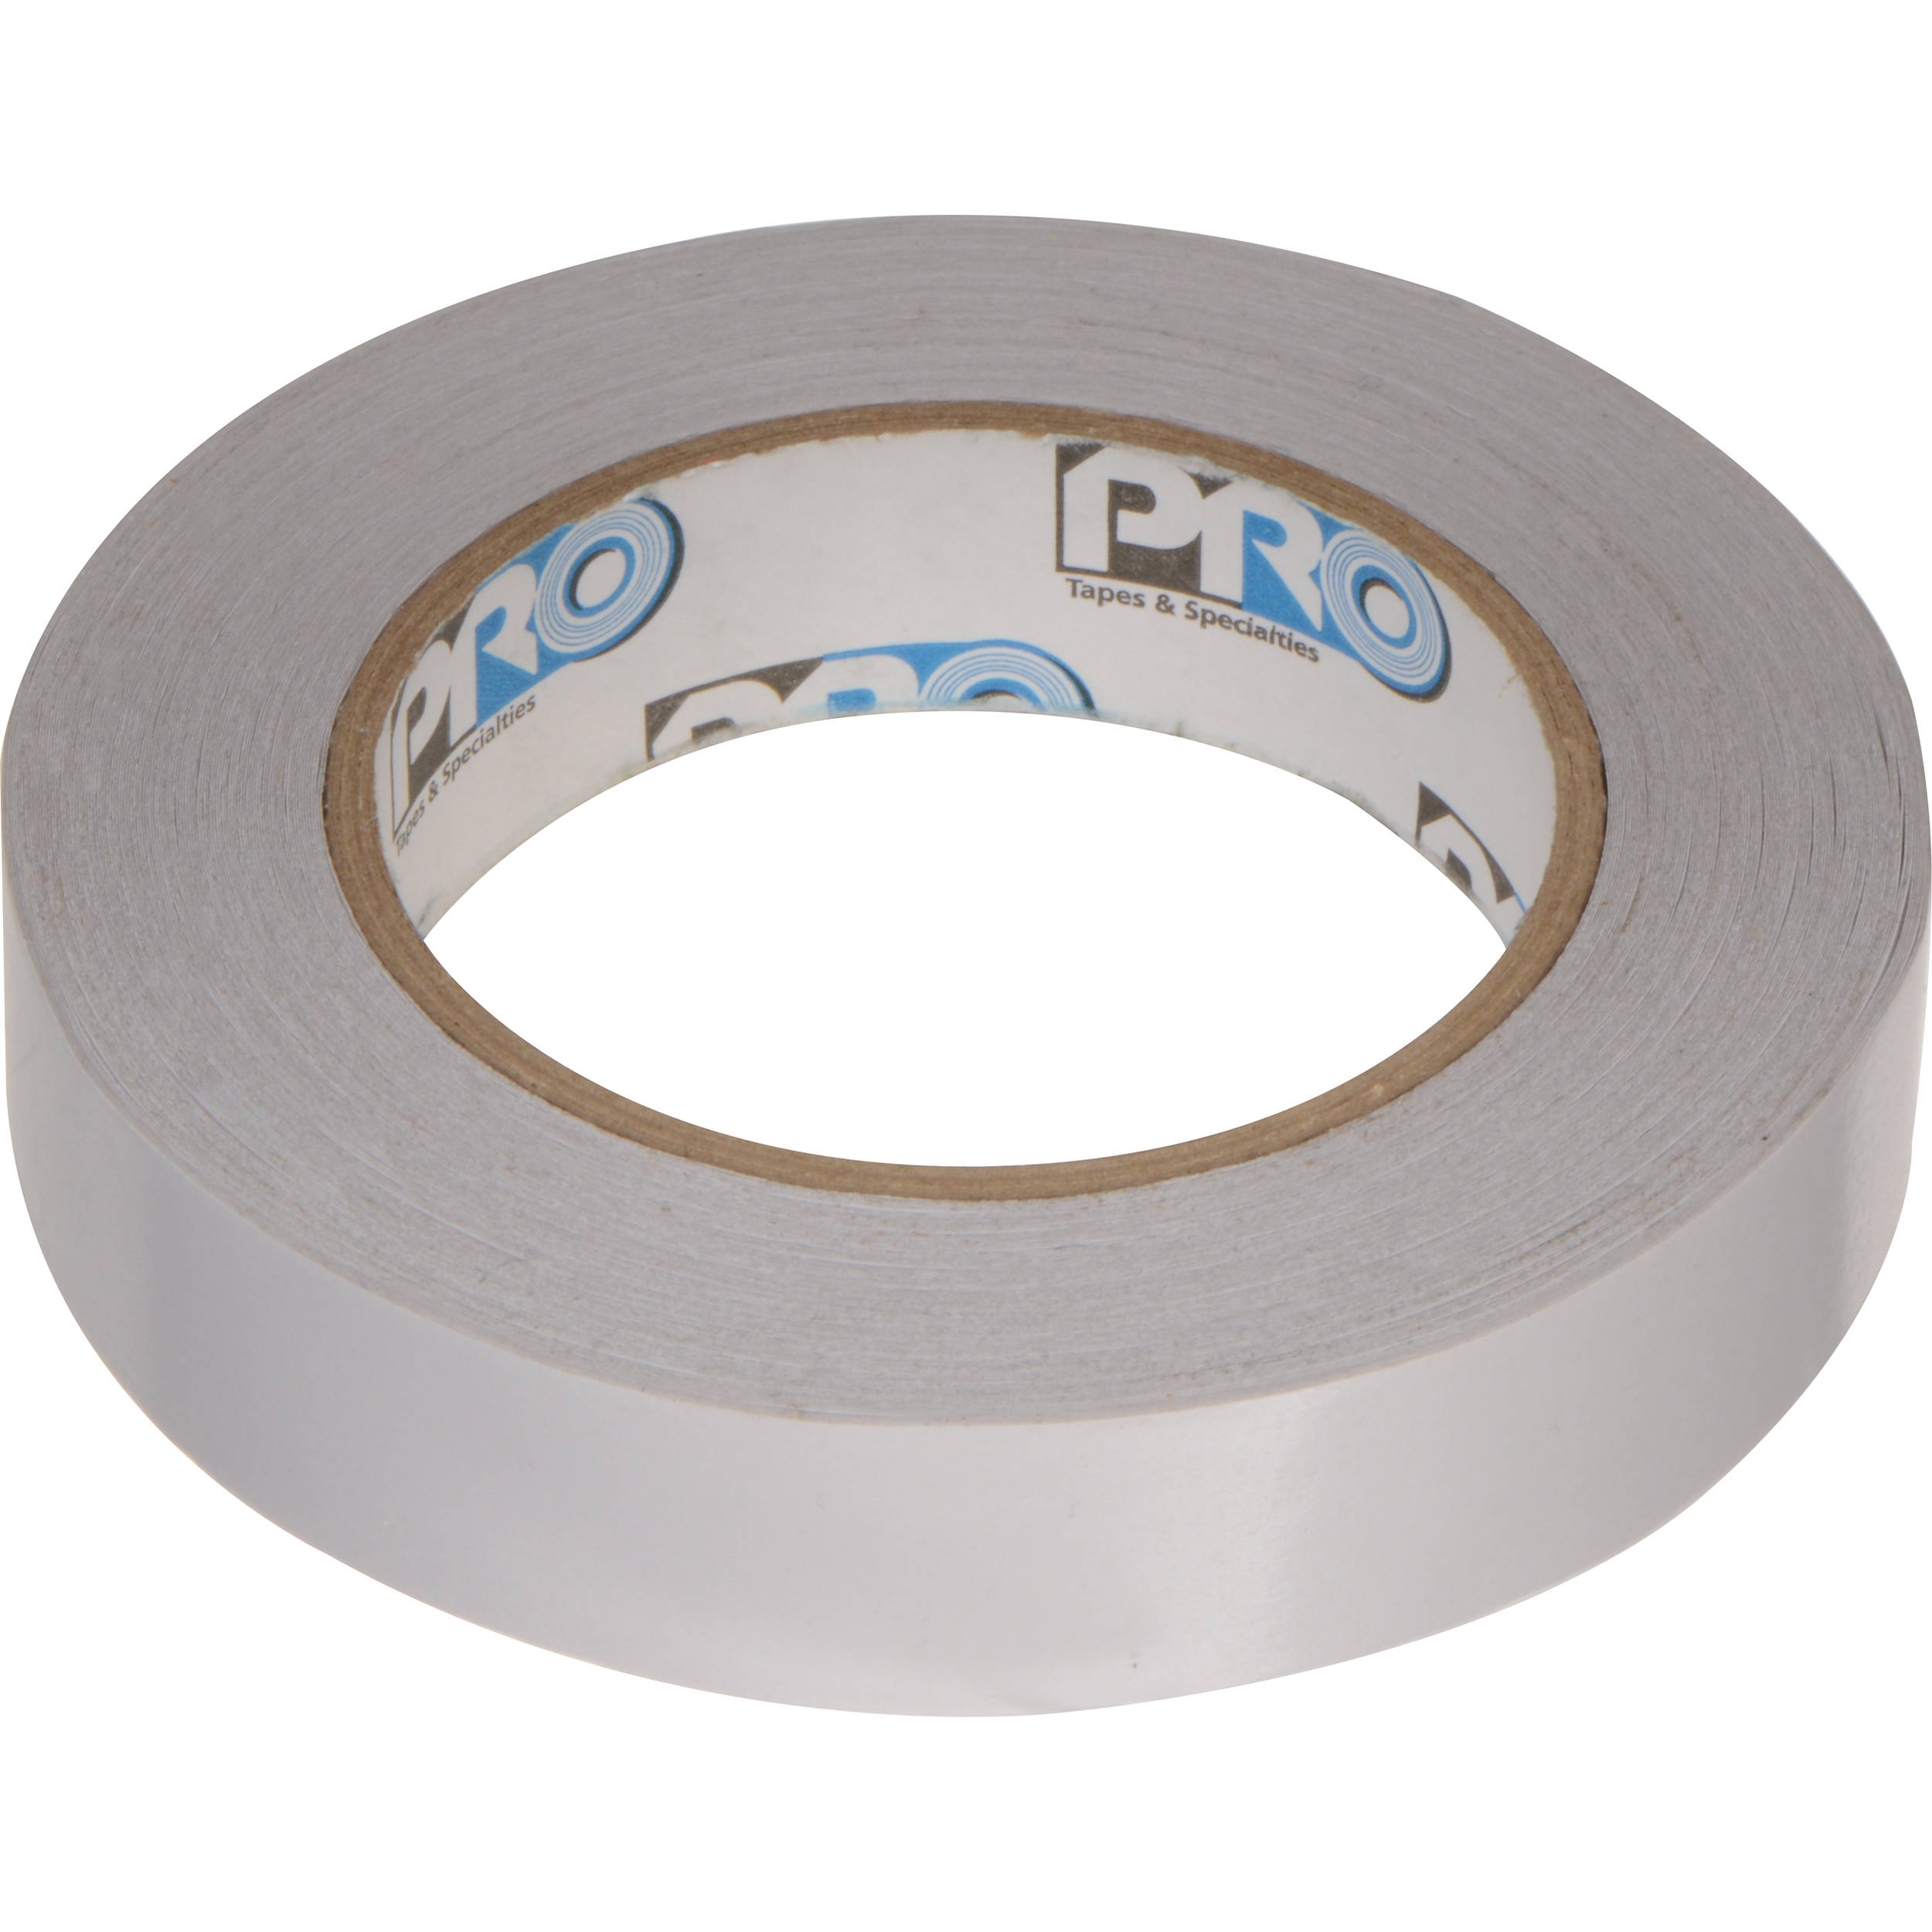 Protapes double sided clear tape with liner 1 wide x 36 yd long 2 5cm x 32 7m